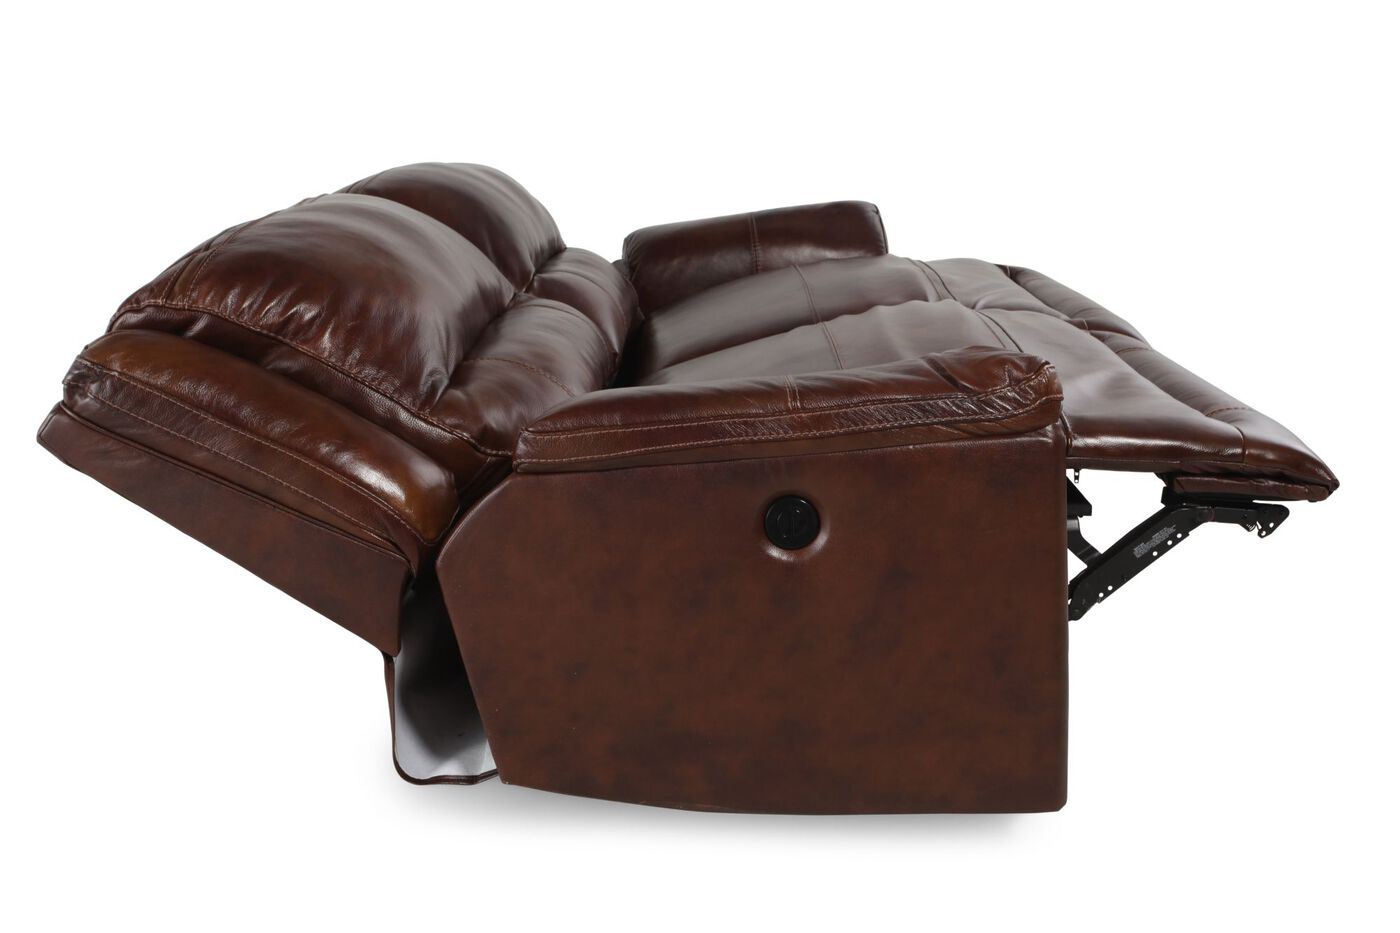 click sofas leather brick room product item sofa reclining bonded living the image furniture black recliner zander change power to